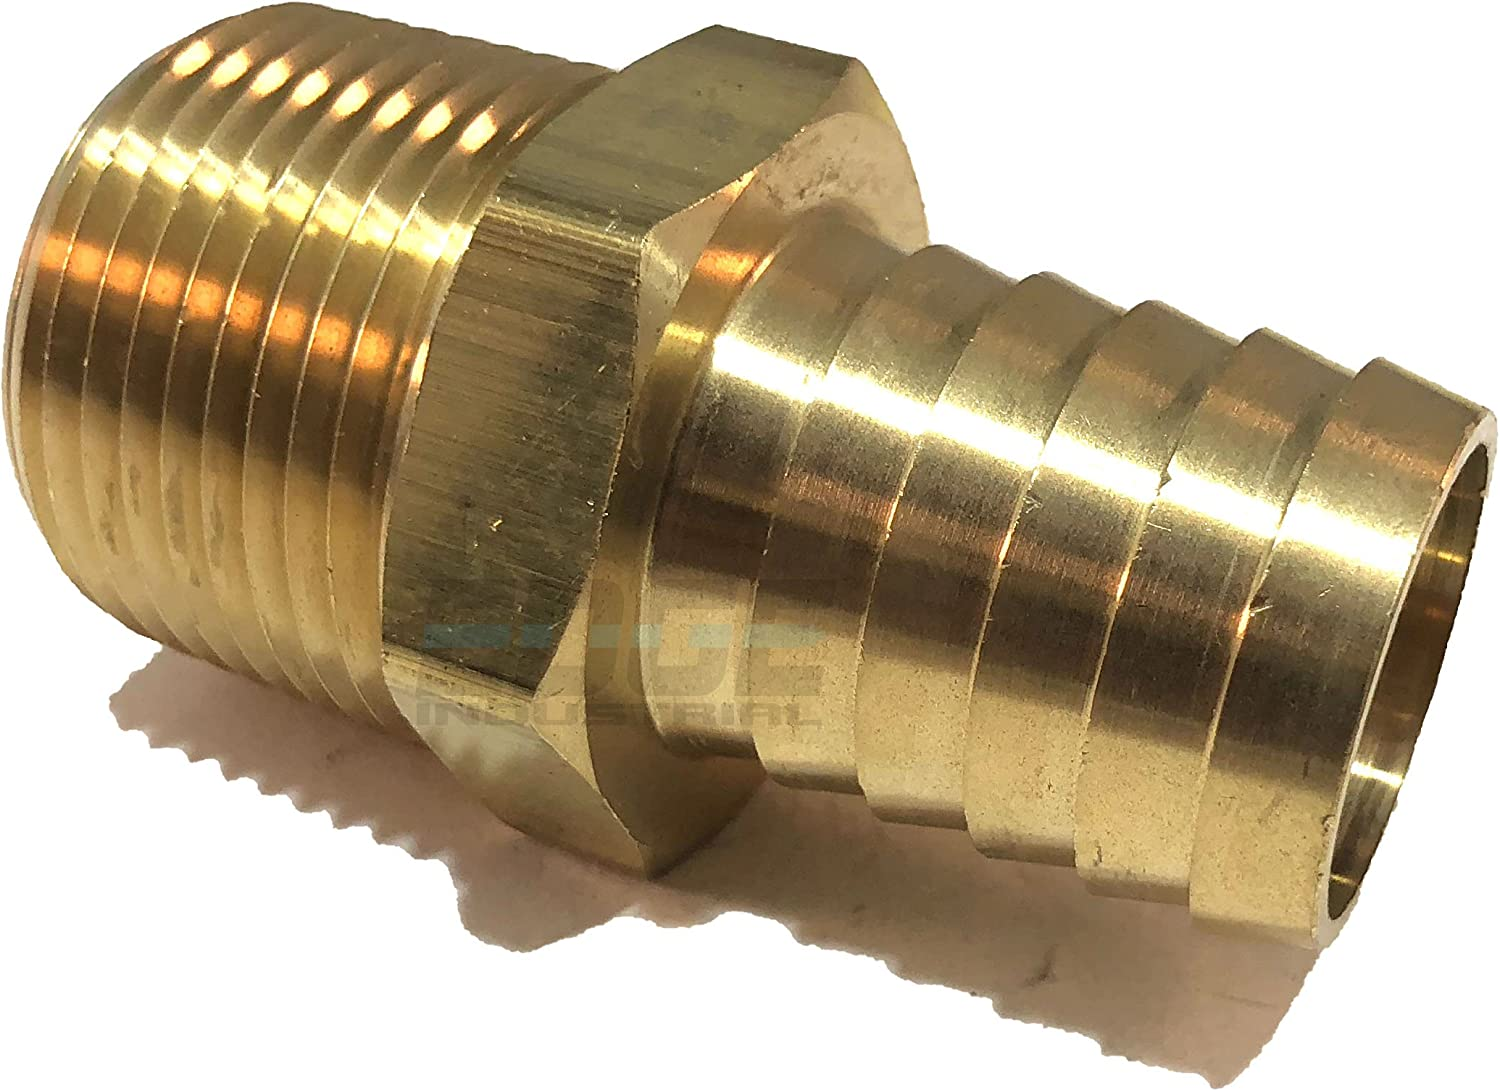 AIR EDGE INDUSTRIAL 1 Hose ID to 1 Male NPT MNPT Straight Brass Fitting Fuel Qty 1 Oil Water WOG Gas